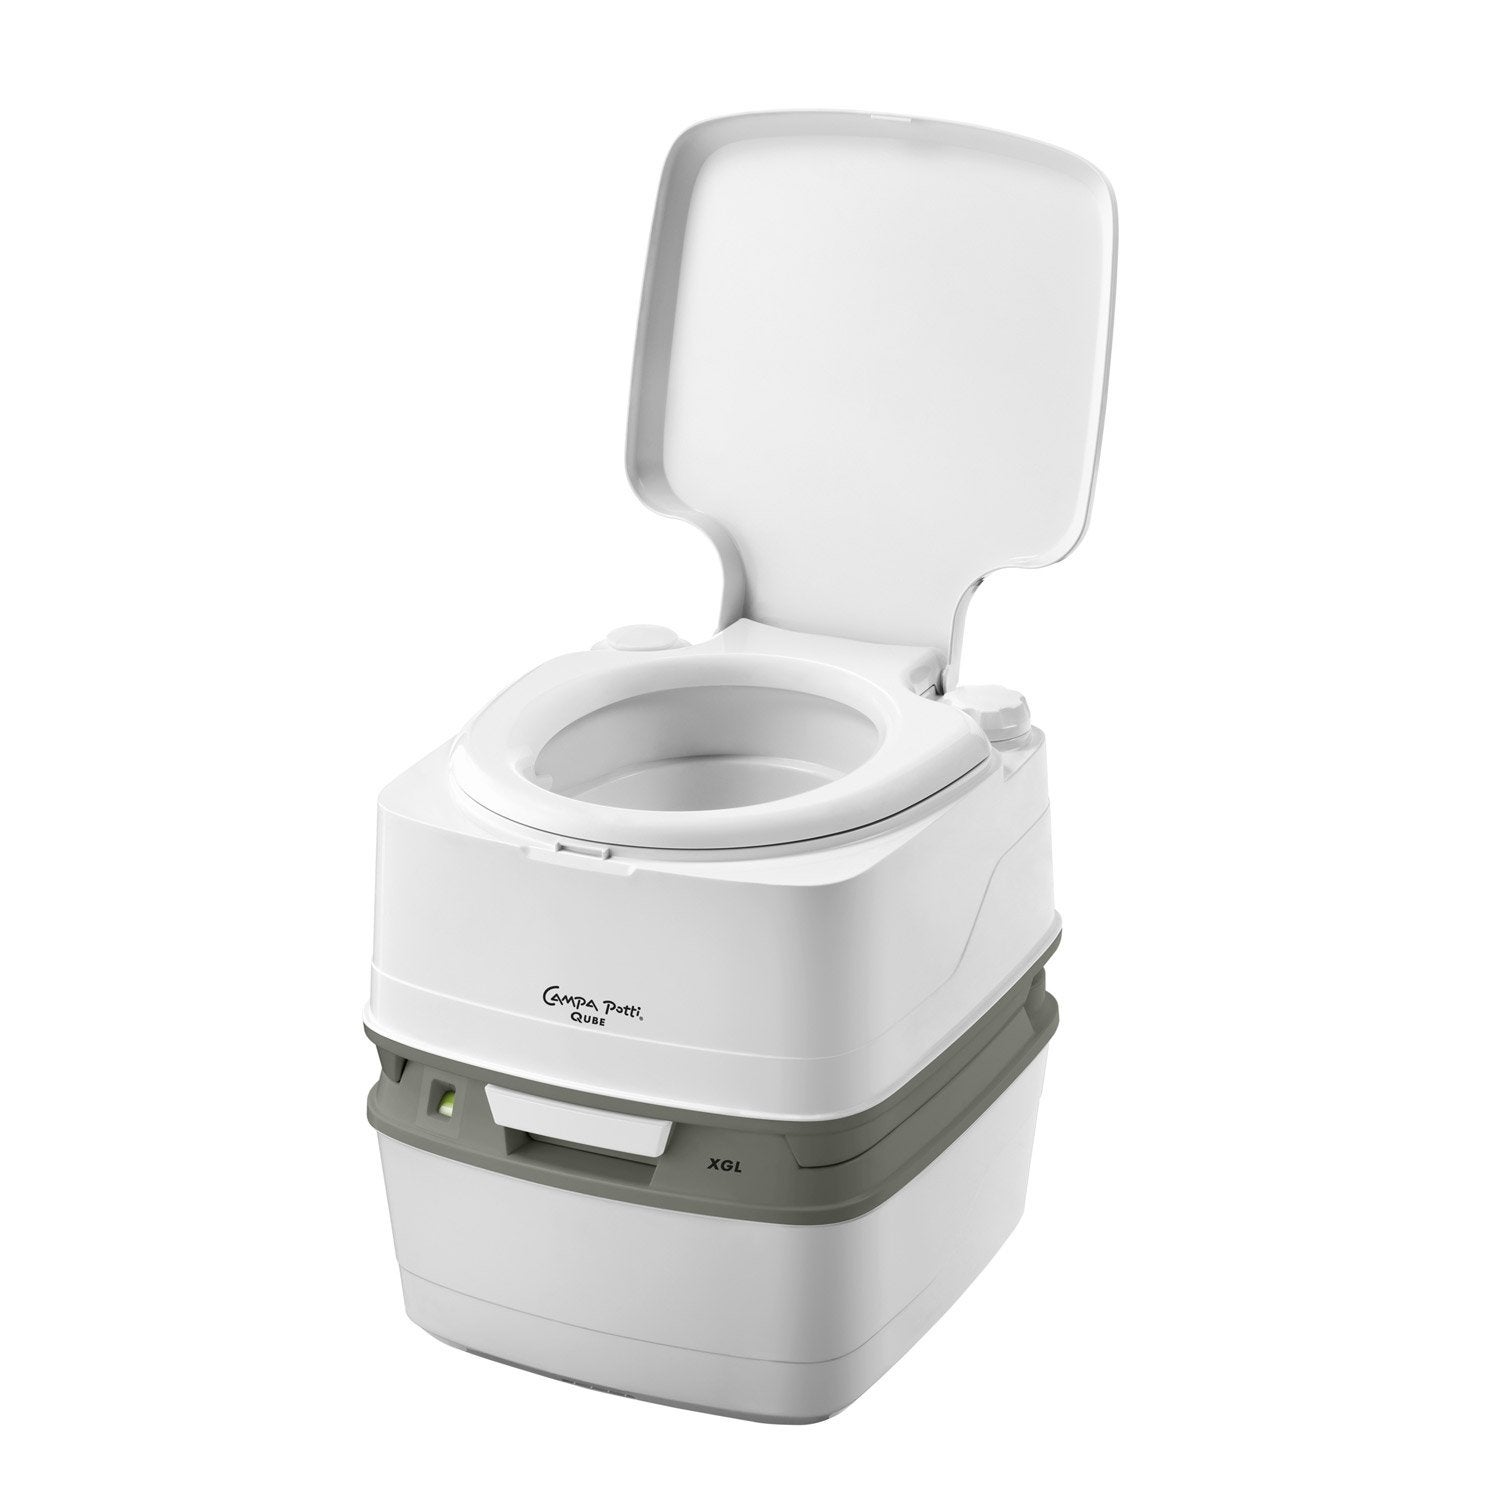 toilette chimique campa potti qube leroy merlin